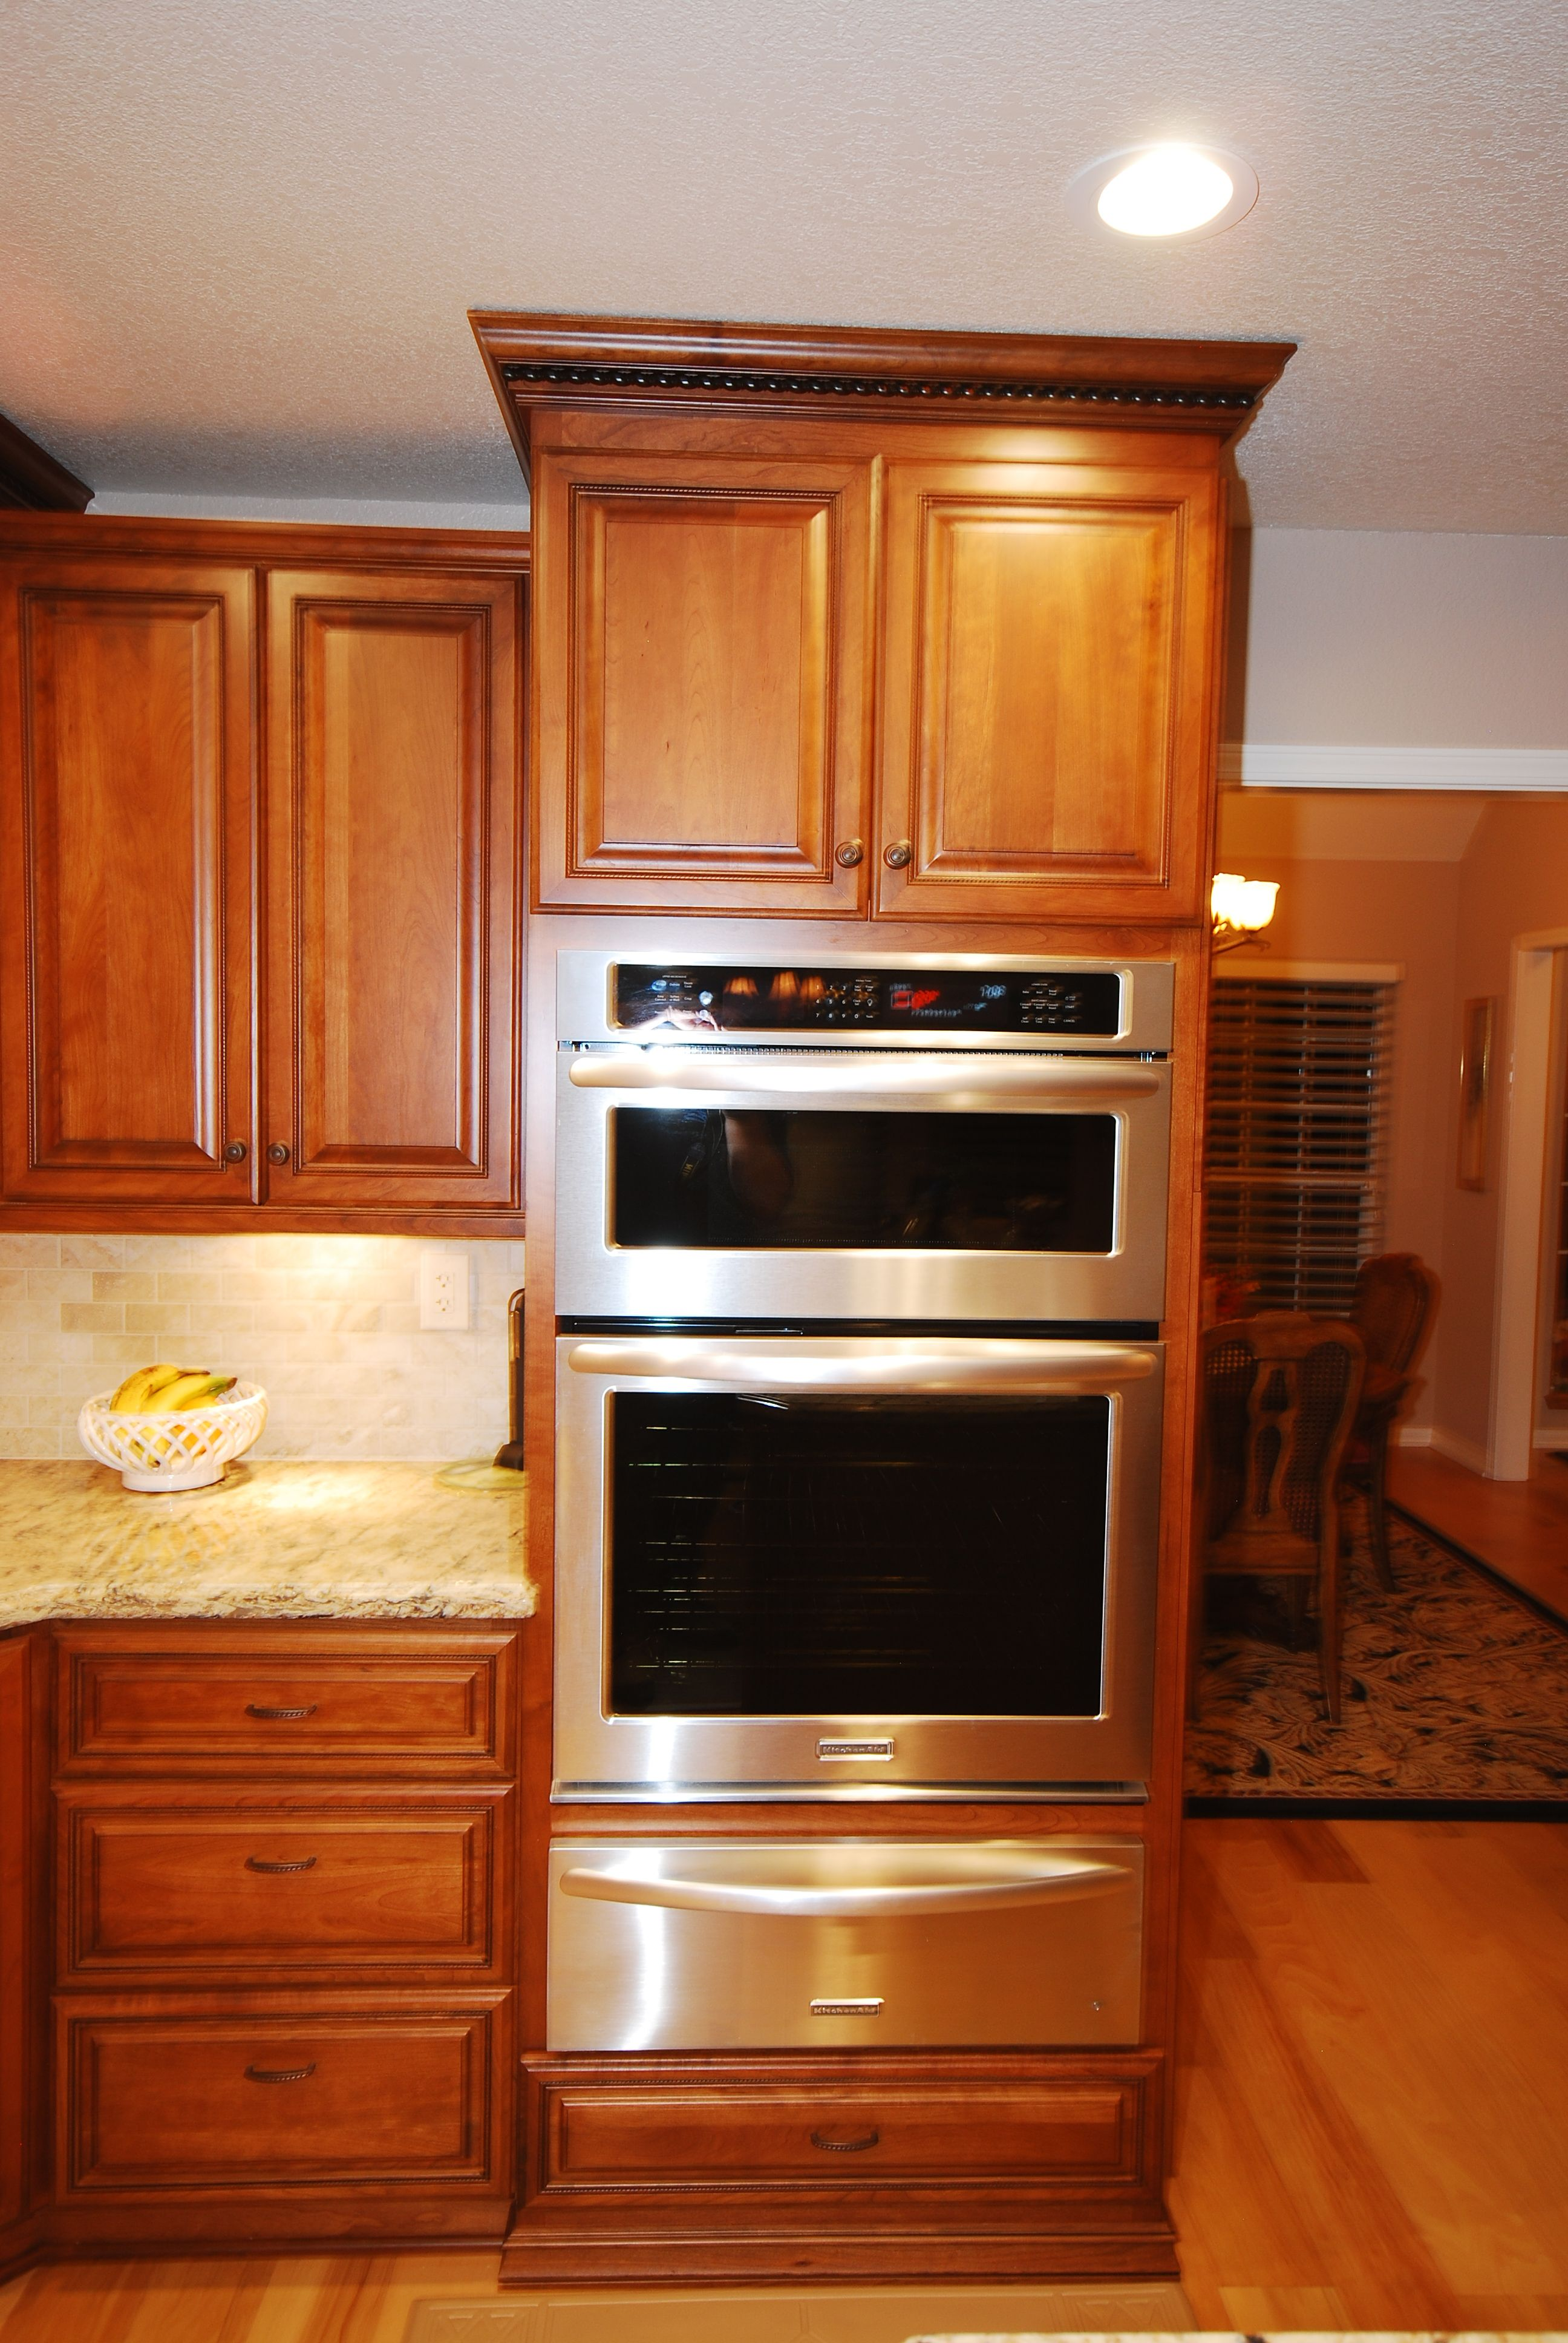 Starmark Cherry Cabinets With Kitchenaid Oven Microwave Combo